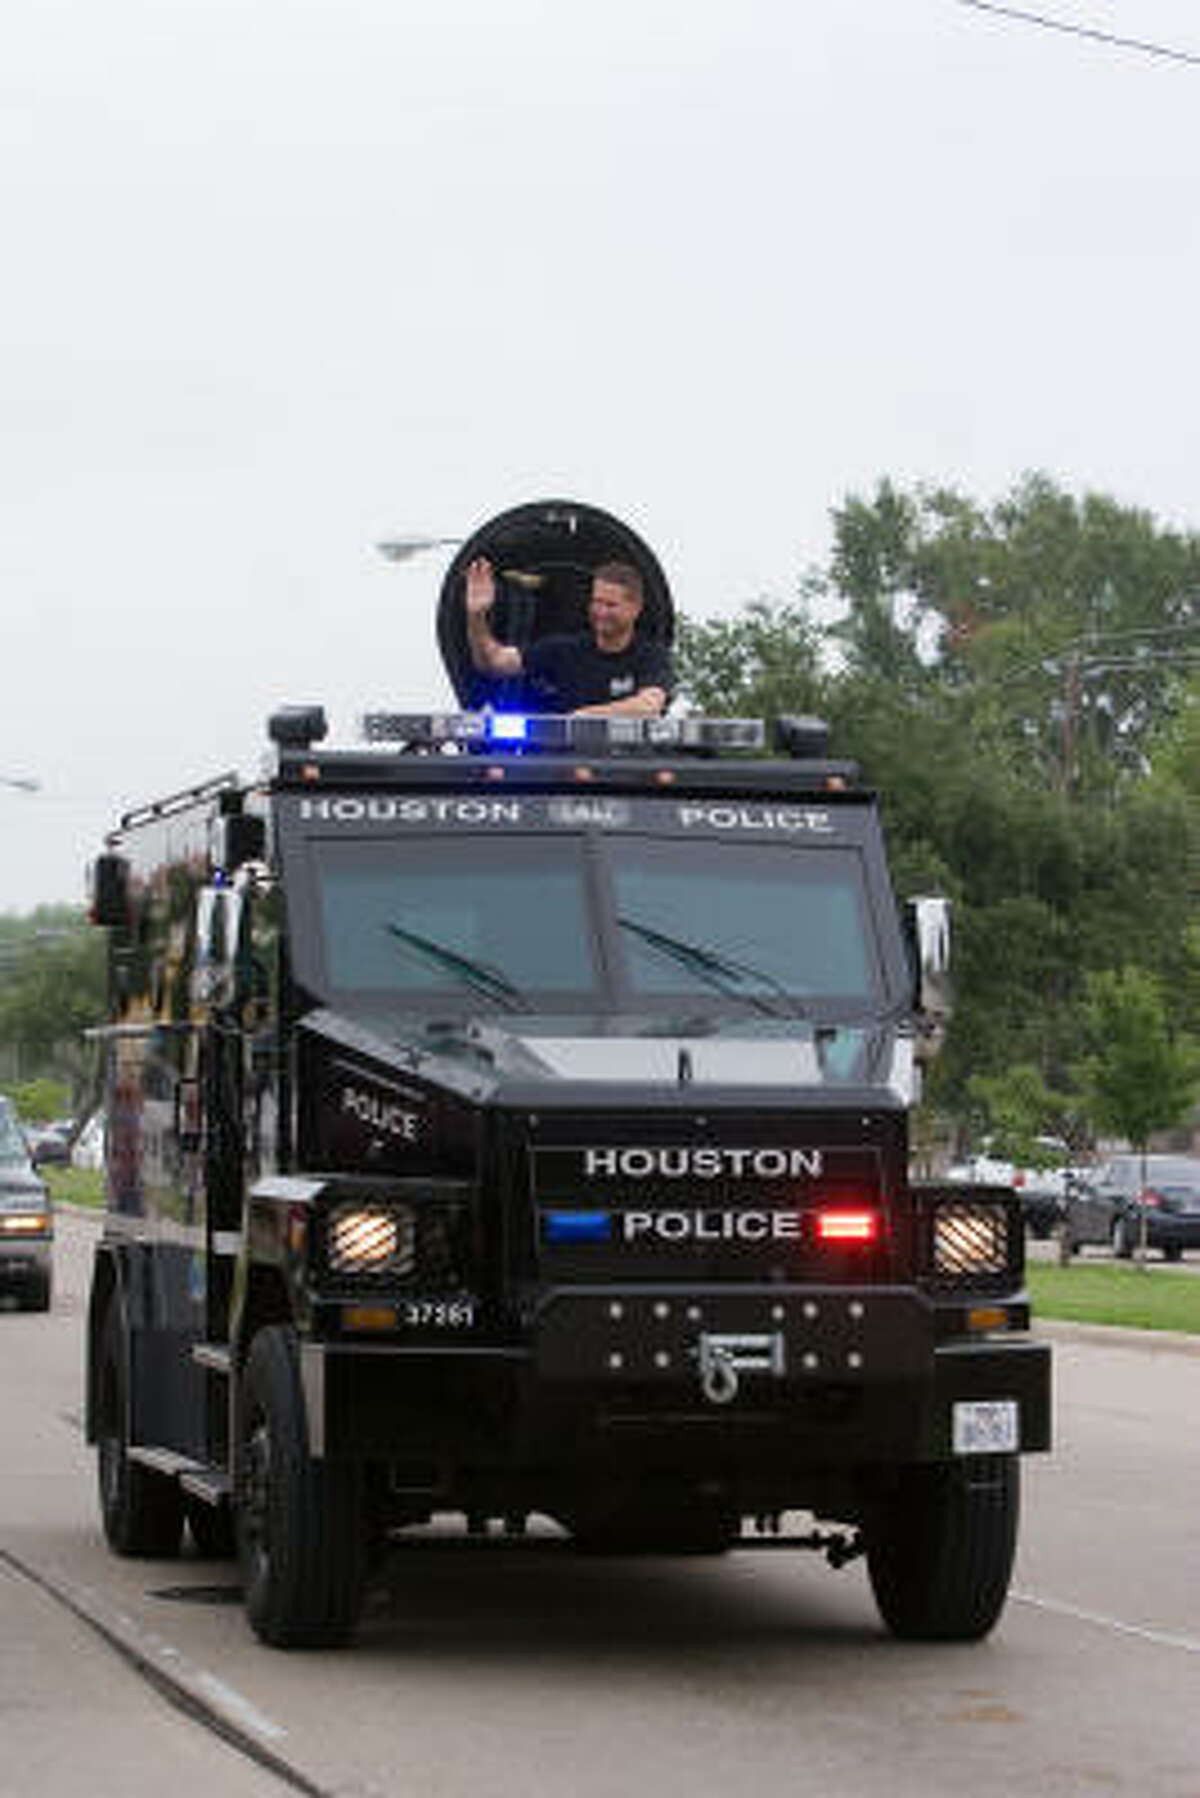 The Houston Police Department SWAT tank also showed up at the parade.